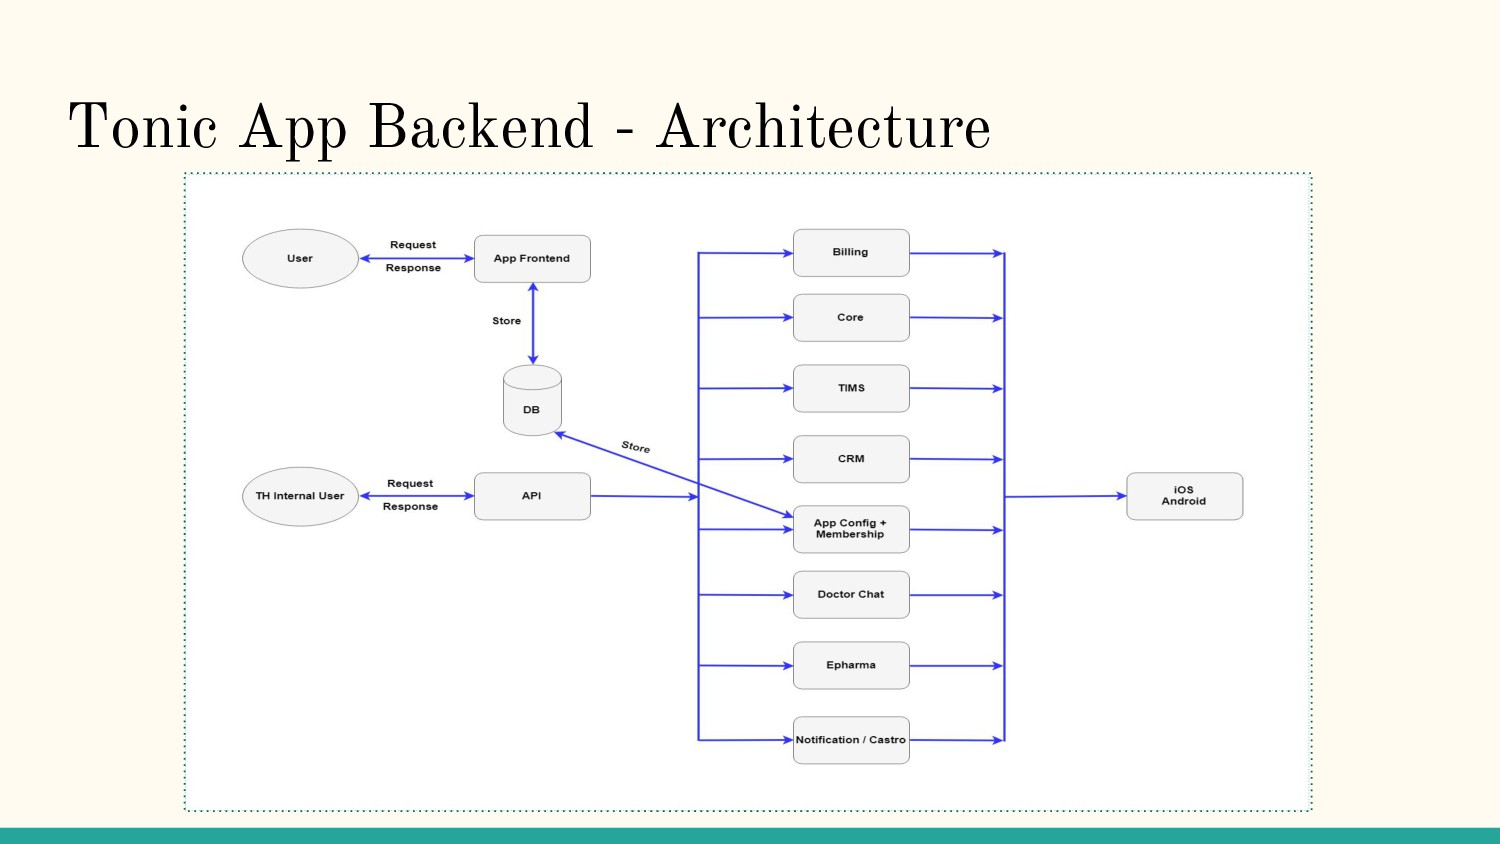 Tonic App Backend - Architecture